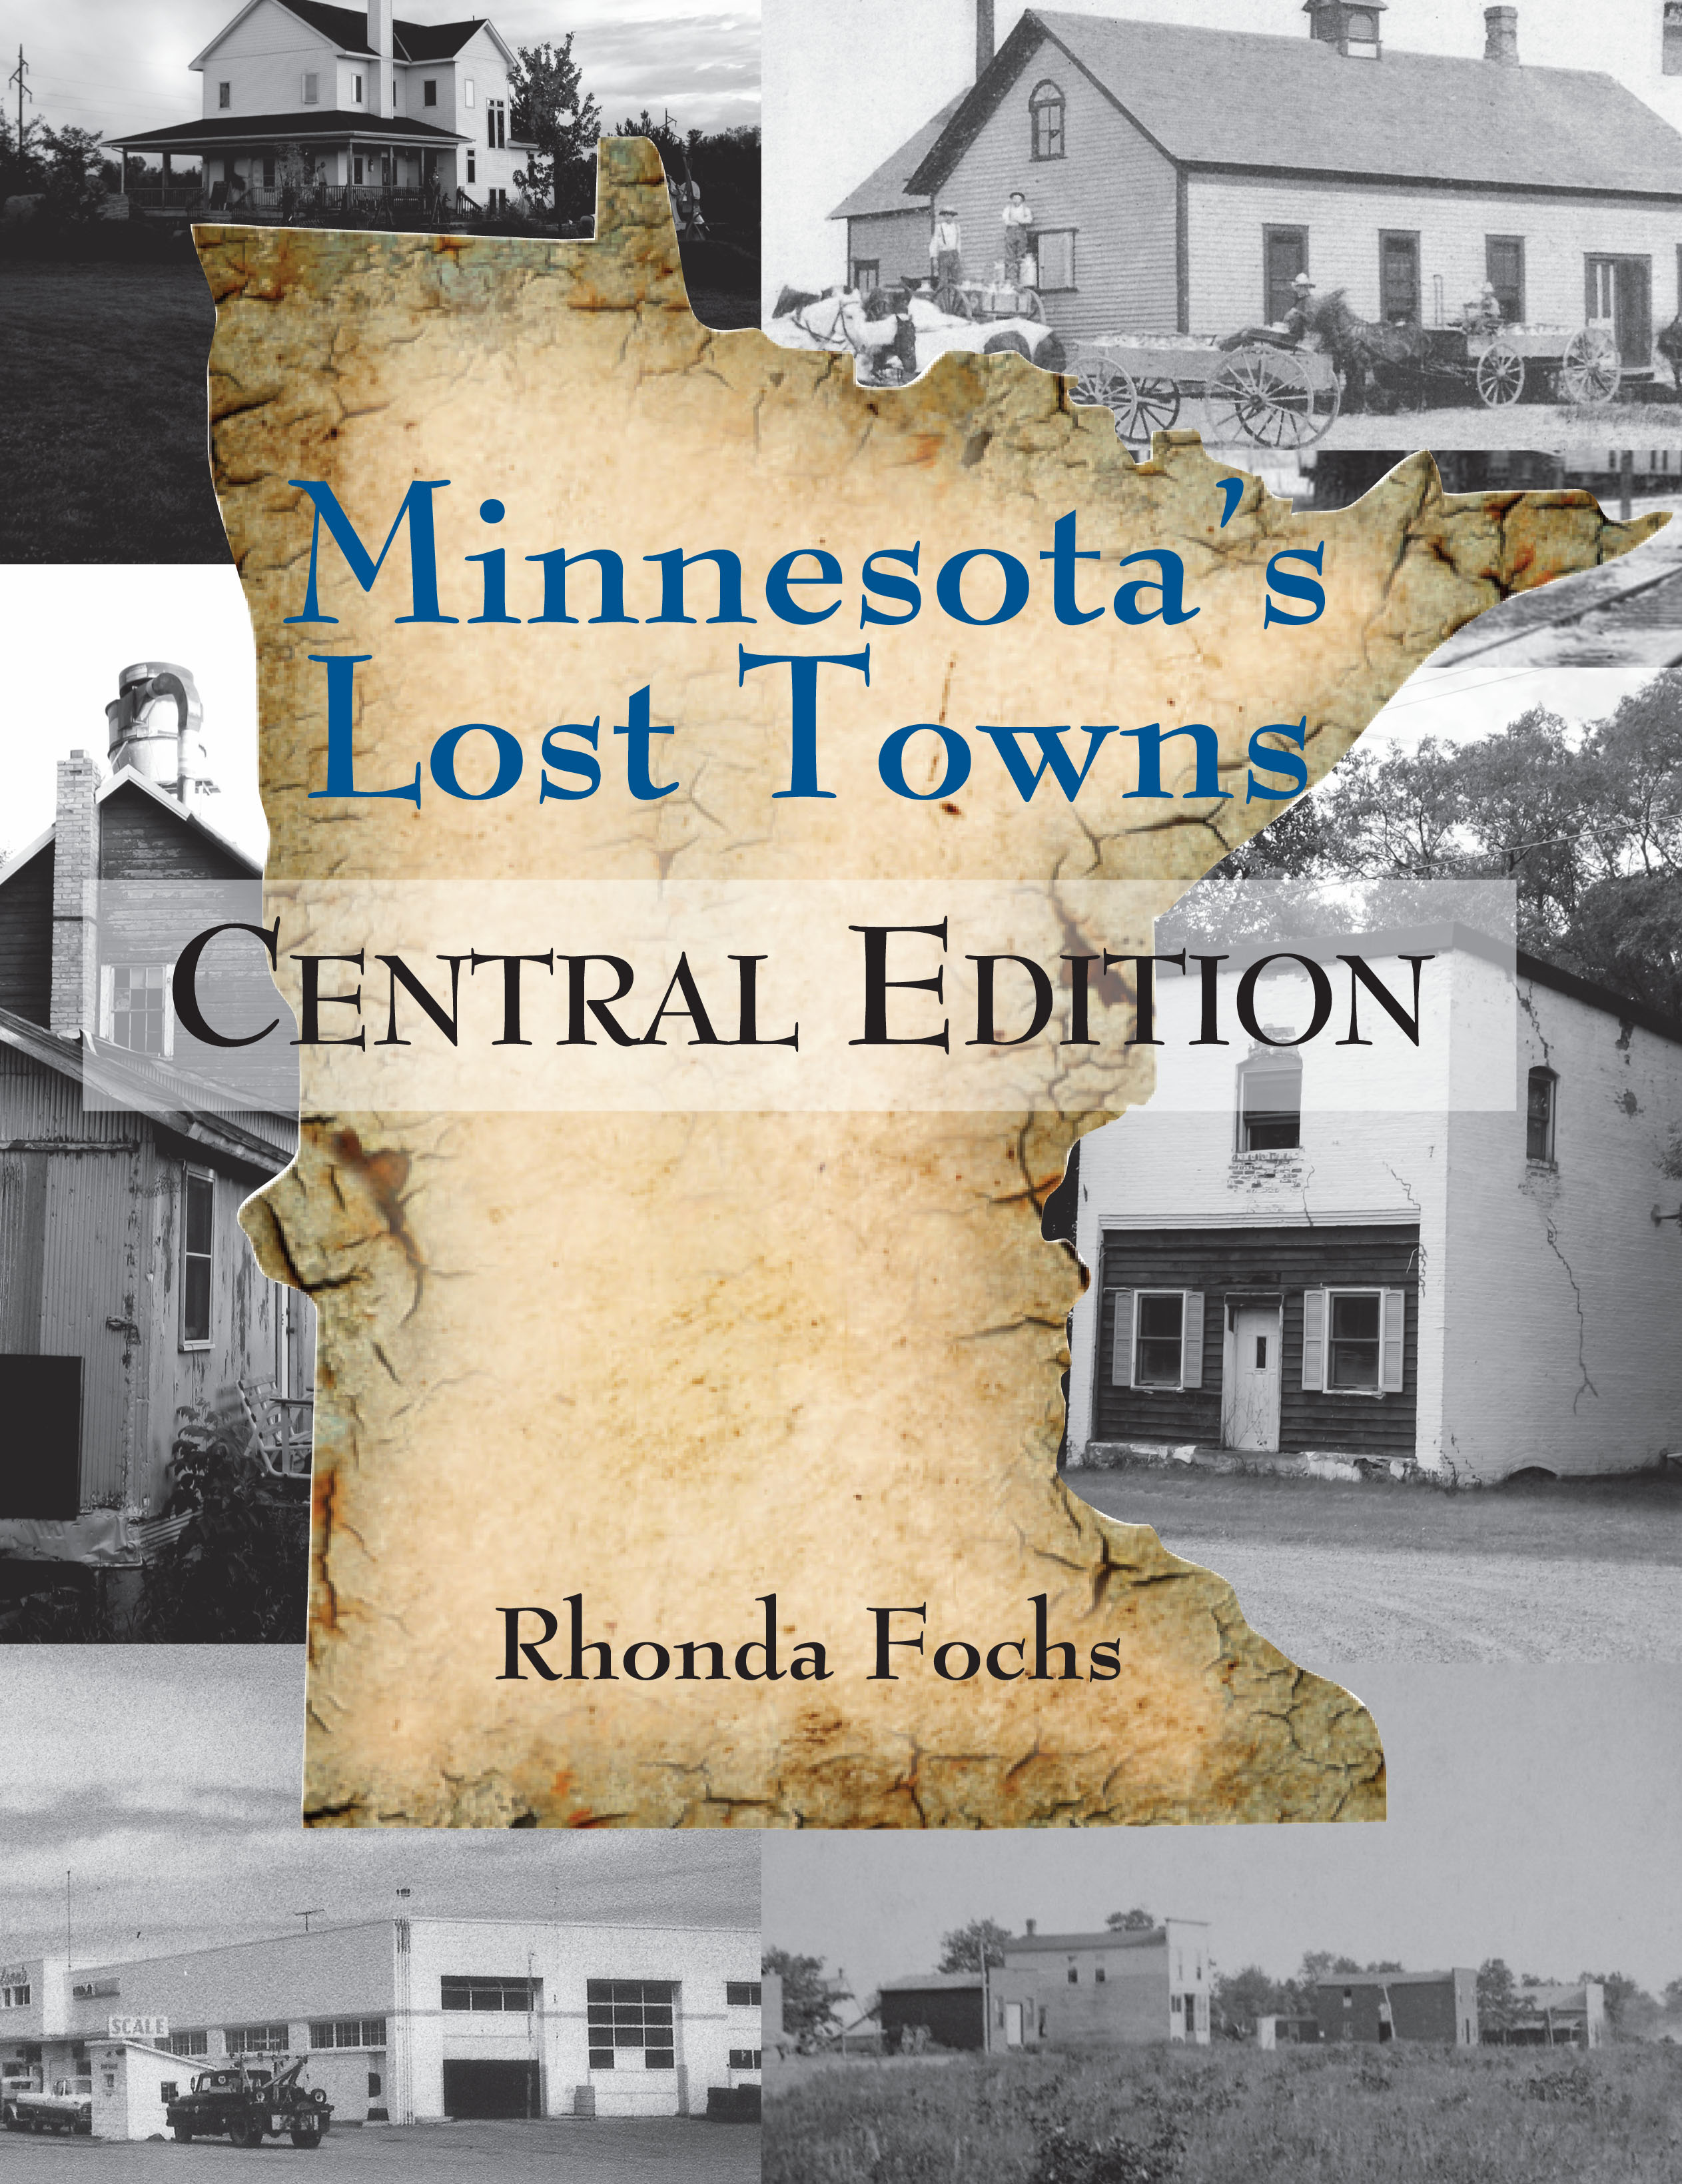 Minnesota's Lost Towns Central Edition